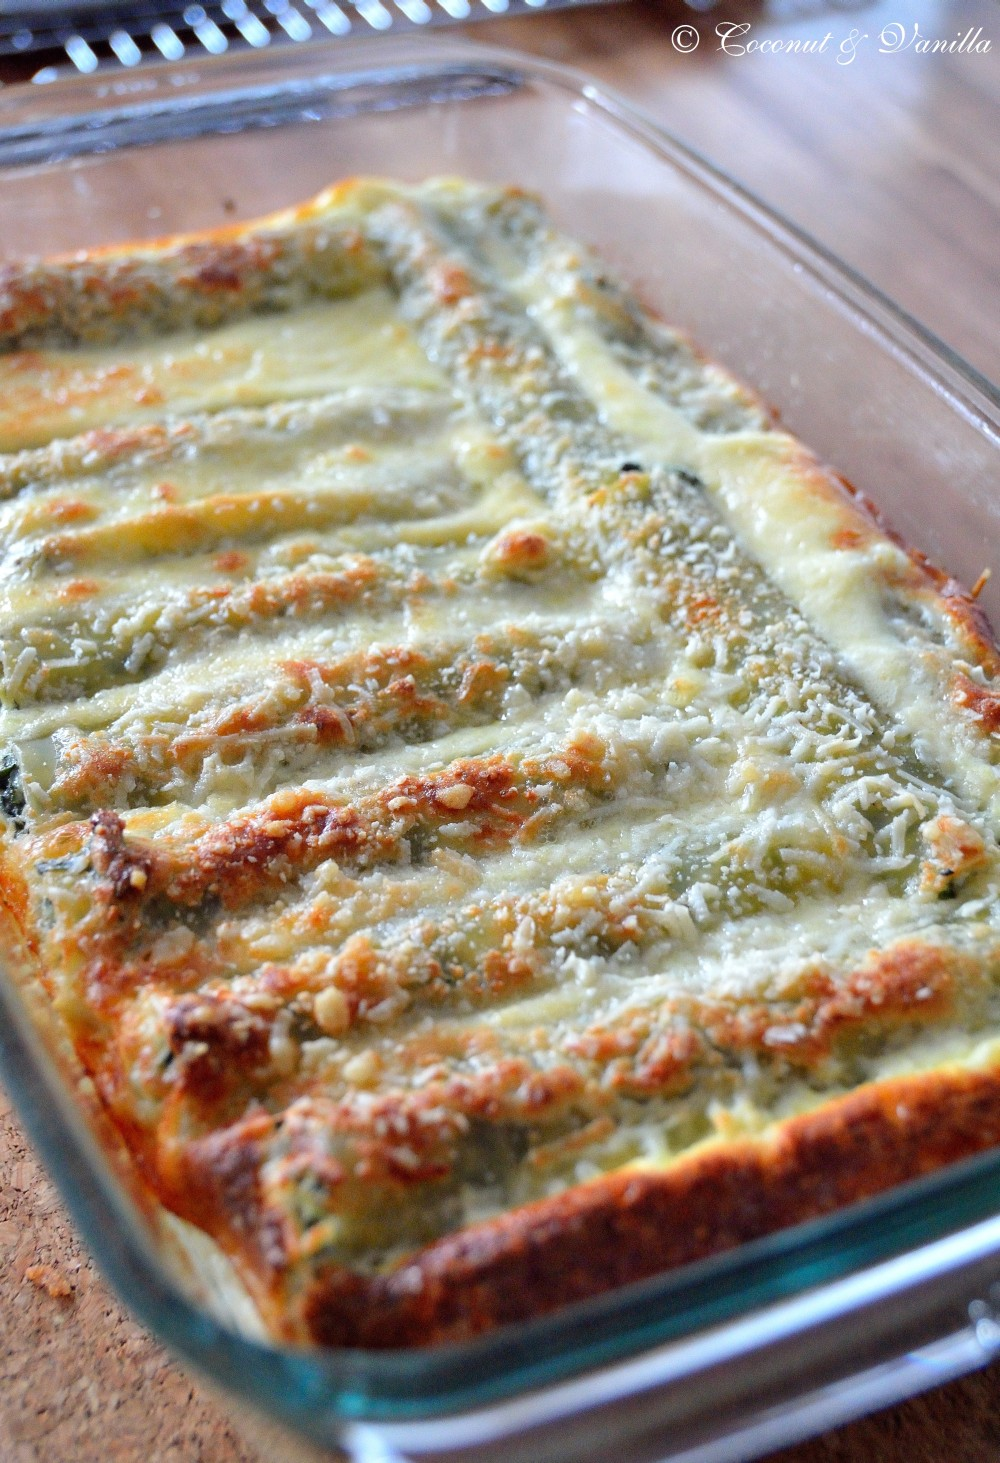 Cannelloni filled with Spinach and Ricotta